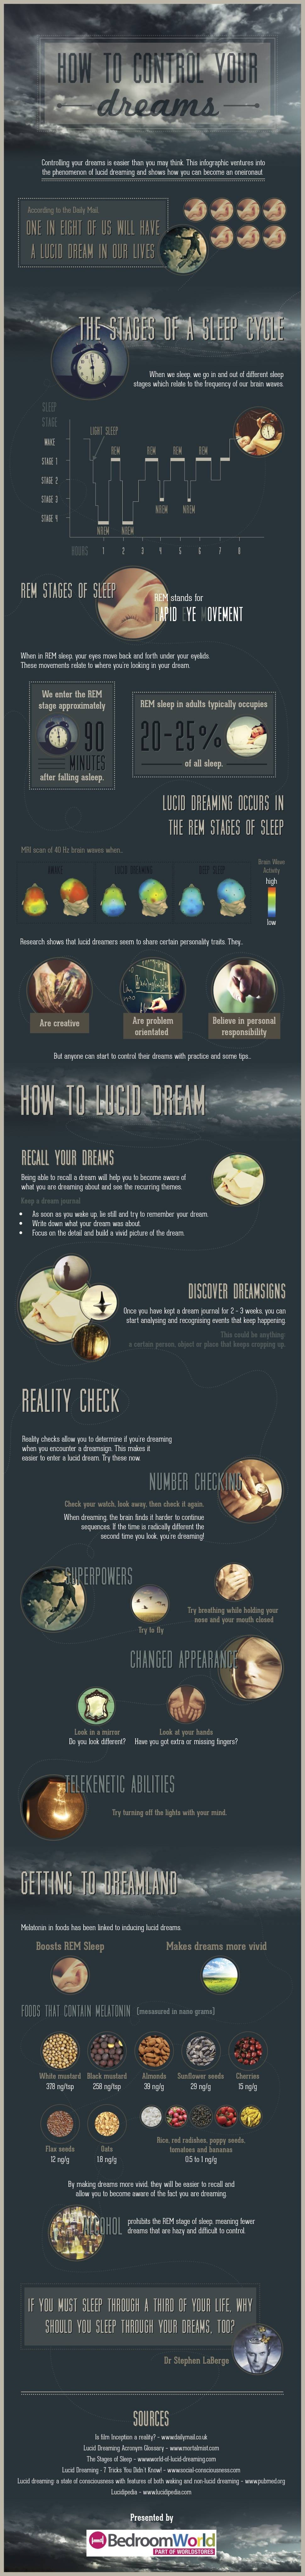 how to control you dreams